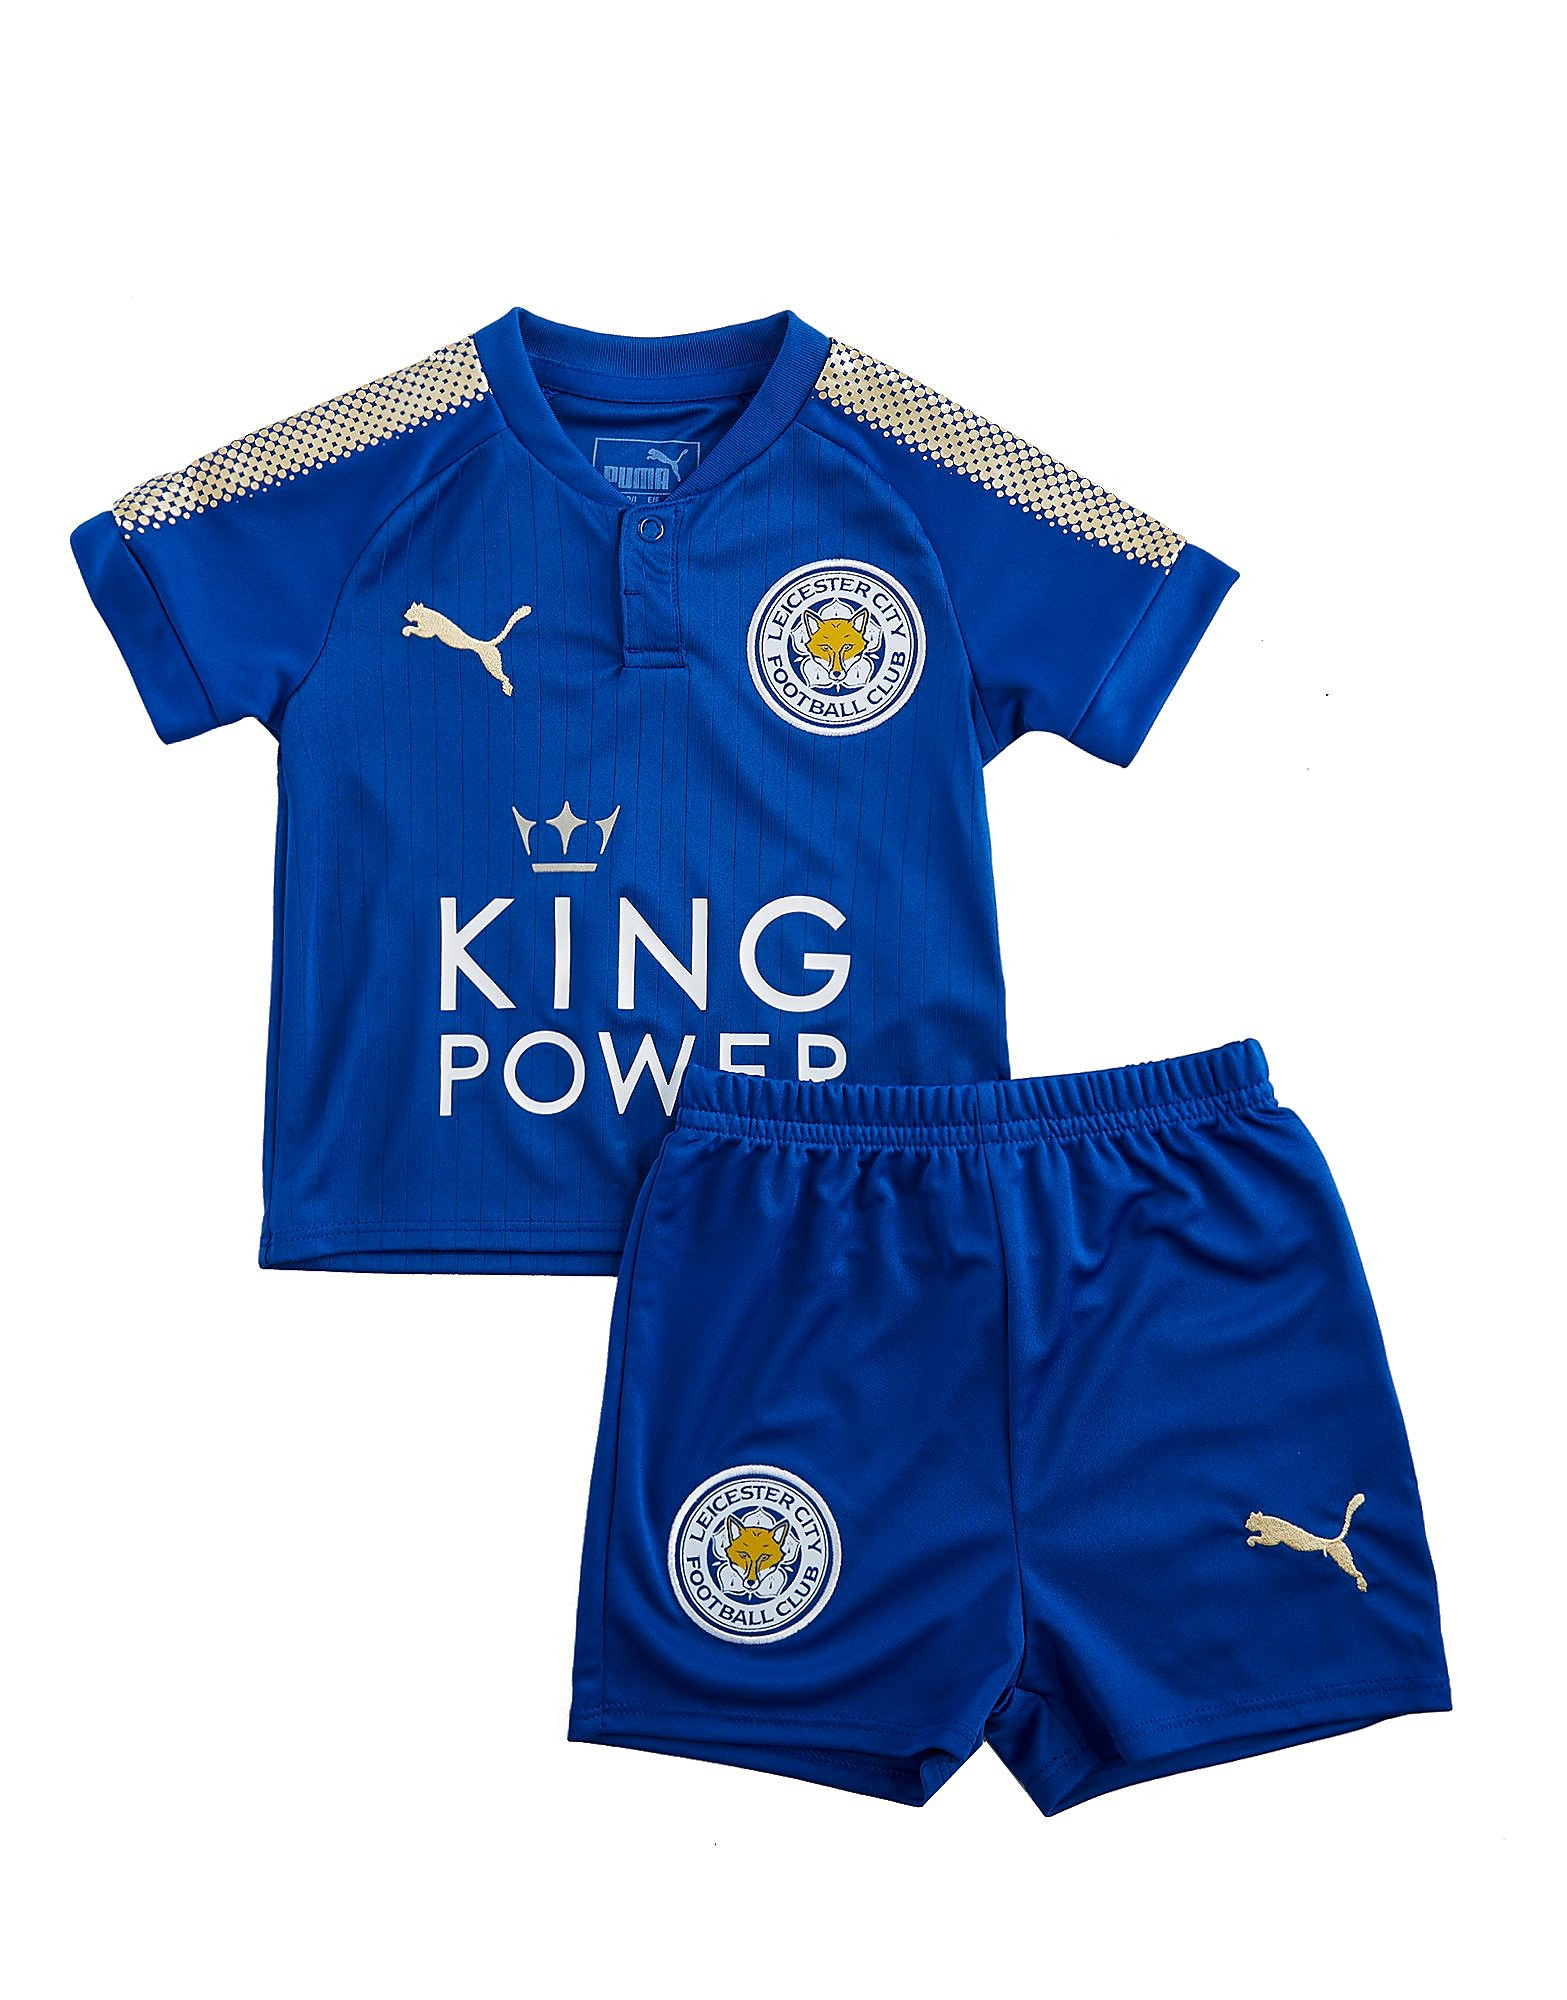 PUMA Leicester City FC 2017/18 Home Kit Infant